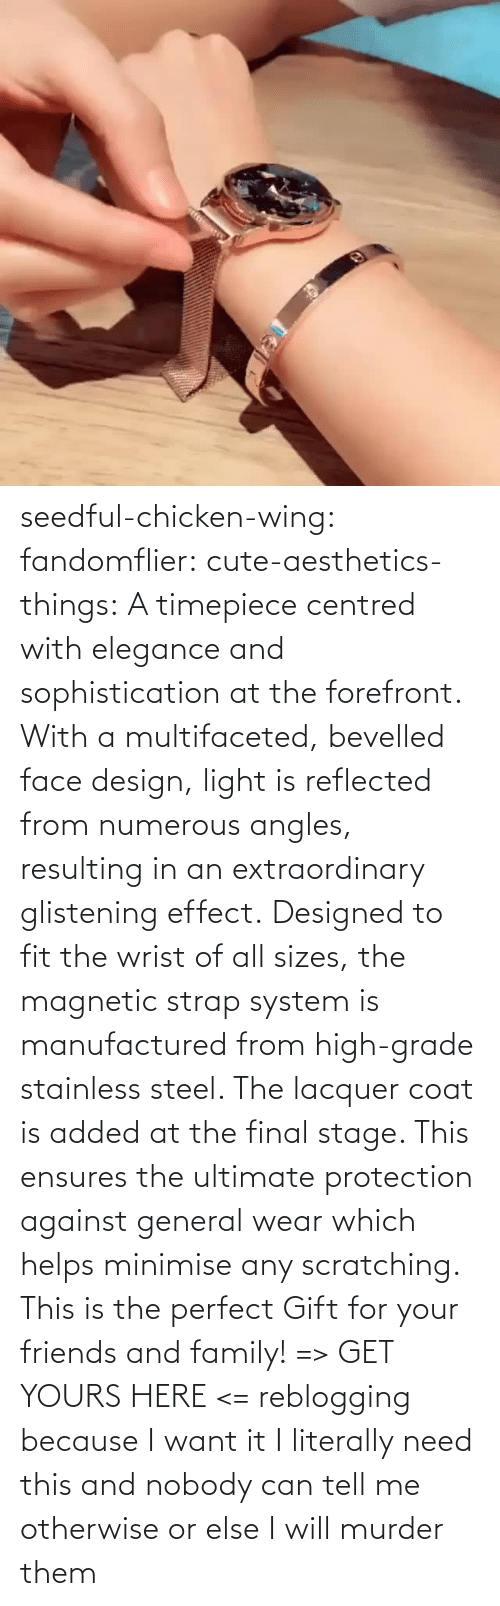 will: seedful-chicken-wing: fandomflier:  cute-aesthetics-things:   A timepiece centred with elegance and sophistication at the forefront. With a multifaceted, bevelled face design, light is reflected from numerous angles, resulting in an extraordinary glistening effect. Designed to fit the wrist of all sizes, the magnetic strap system is manufactured from high-grade stainless steel. The lacquer coat is added at the final stage. This ensures the ultimate protection against general wear which helps minimise any scratching. This is the perfect Gift for your friends and family! => GET YOURS HERE <=   reblogging because I want it  I literally need this and nobody can tell me otherwise or else I will murder them